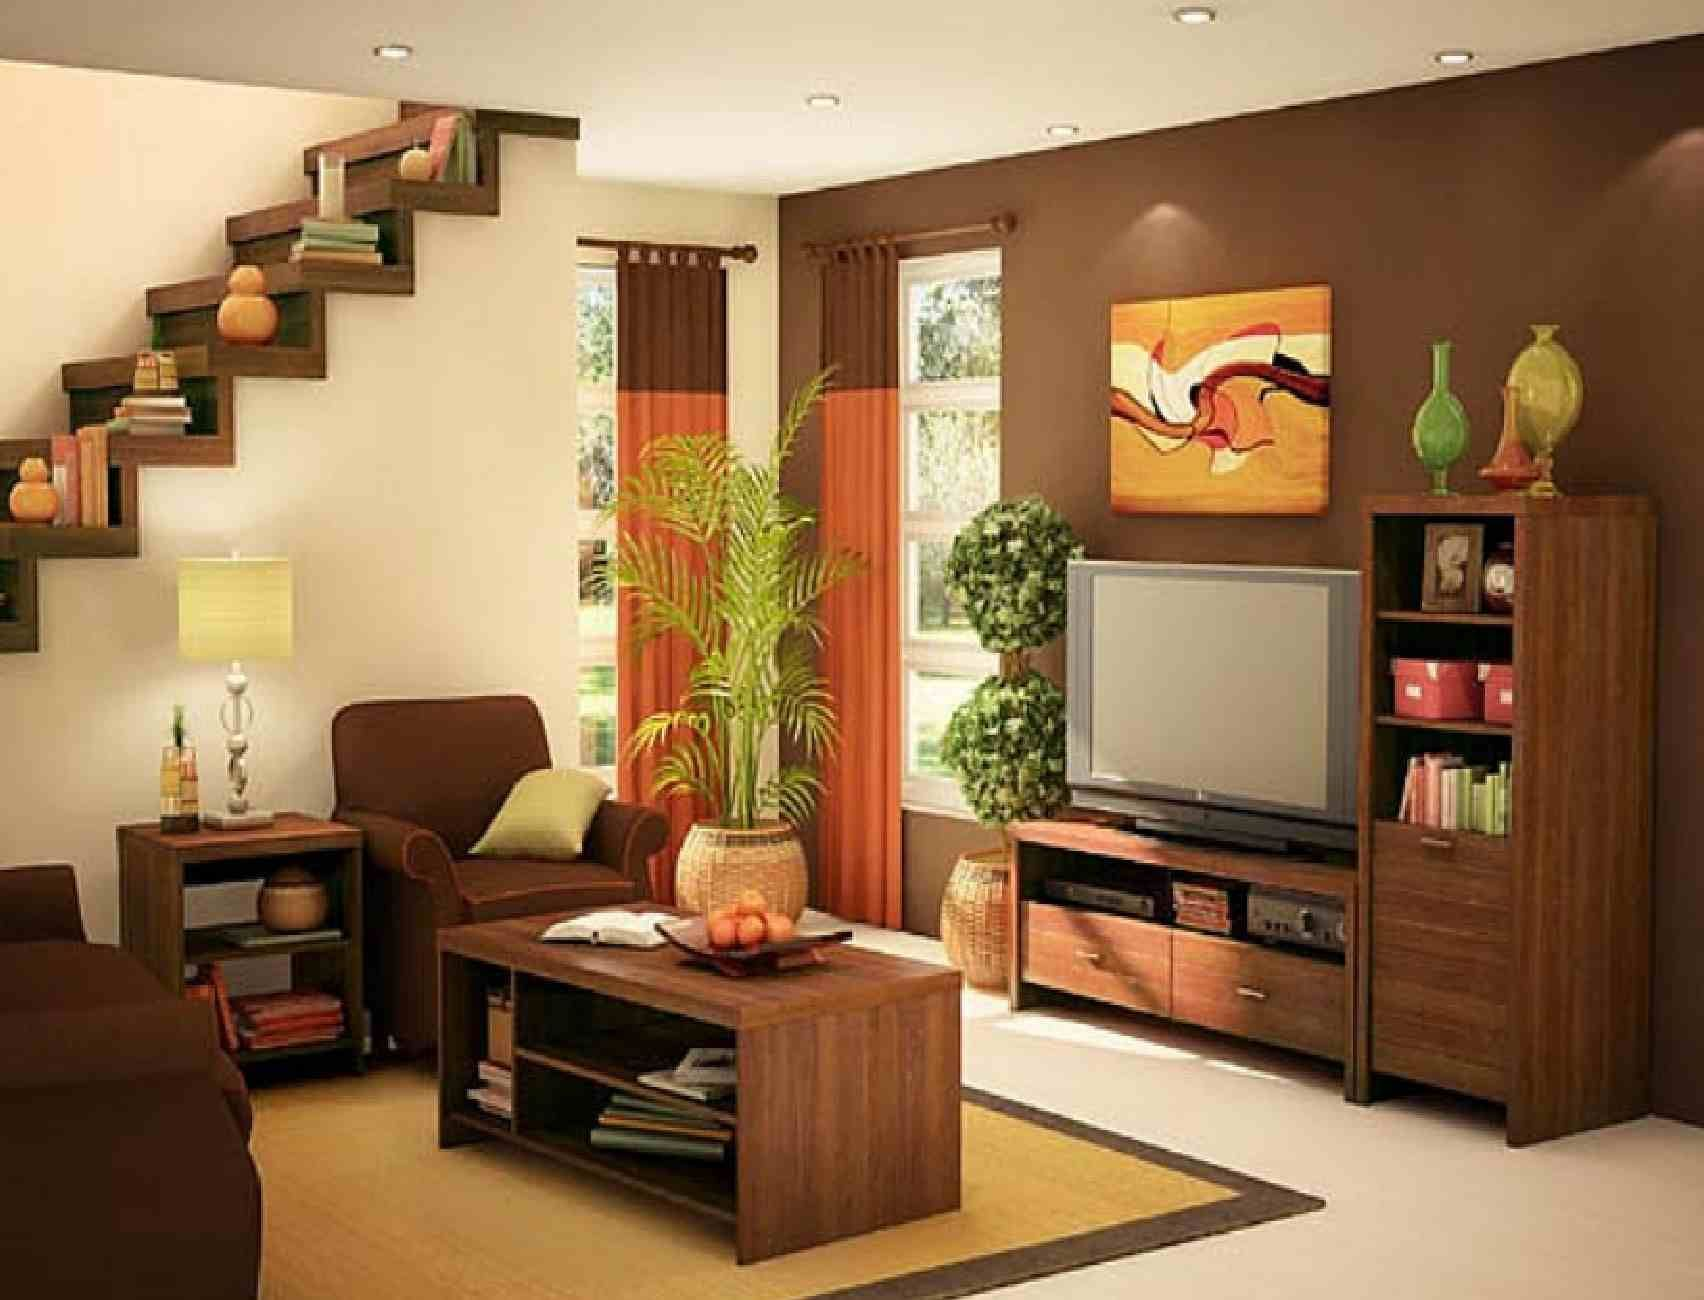 Simple Home Decor Ideas For Living Room In 2020 Apartment Living Room Simple Living Room Indian Living Rooms